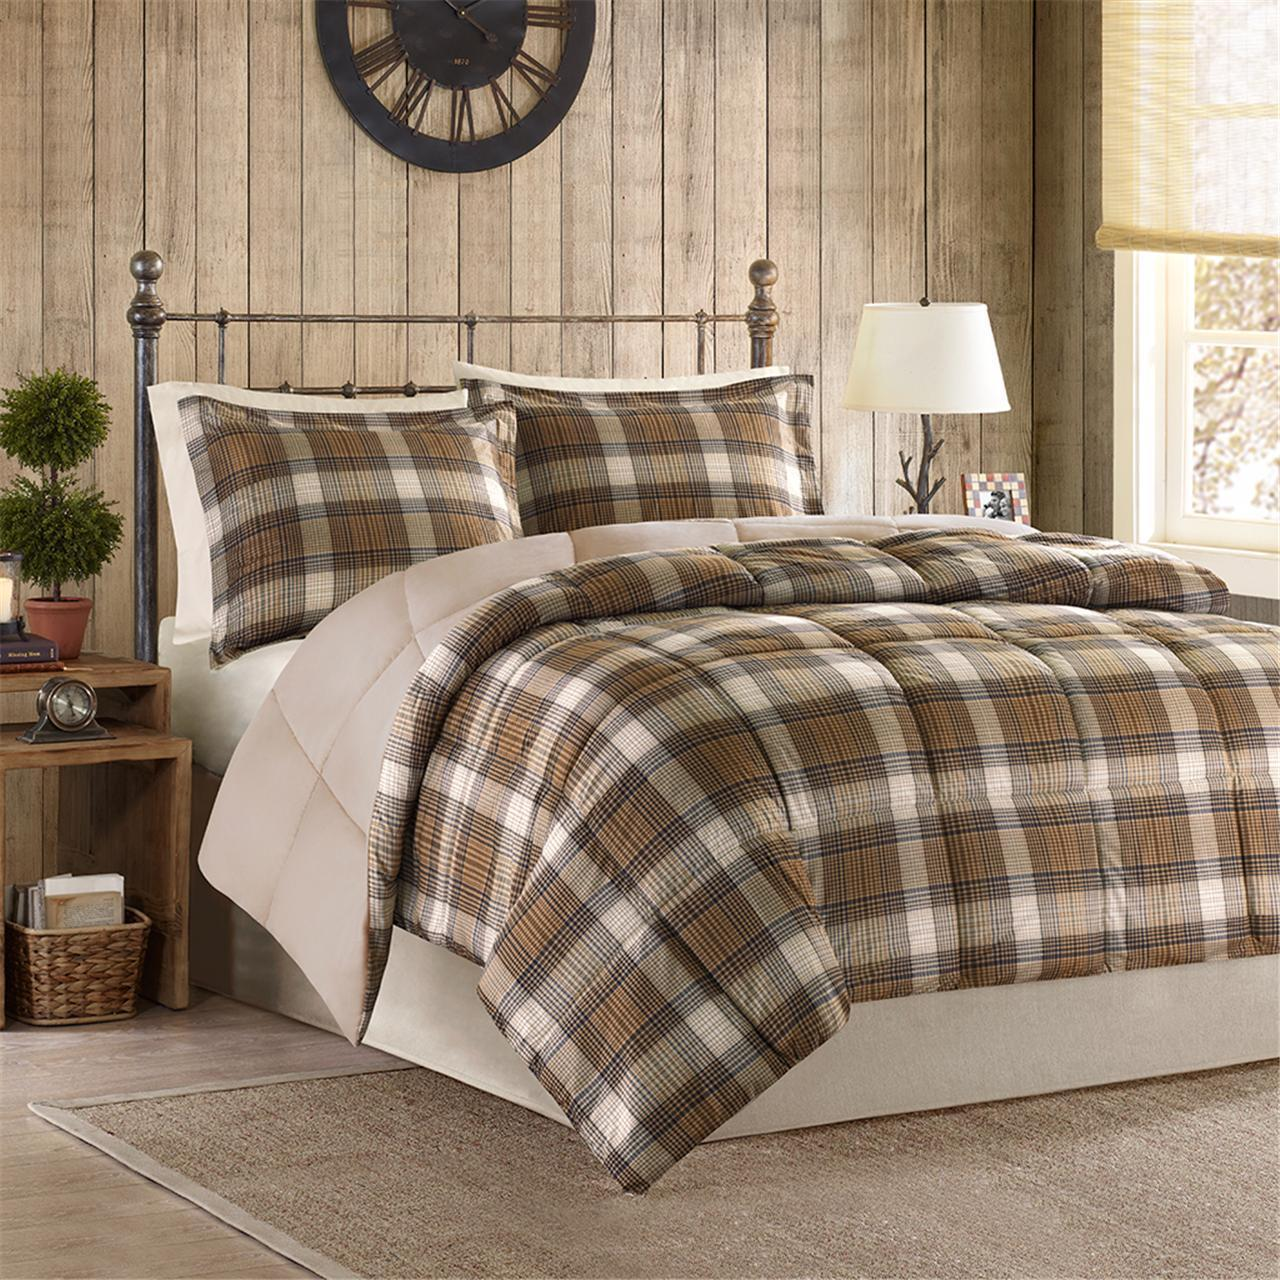 Bedding Woolrich White River King Size Bed Comforter Set Plaid 3 Piece Grey Blue Home Furniture Diy Lugecook Com Br